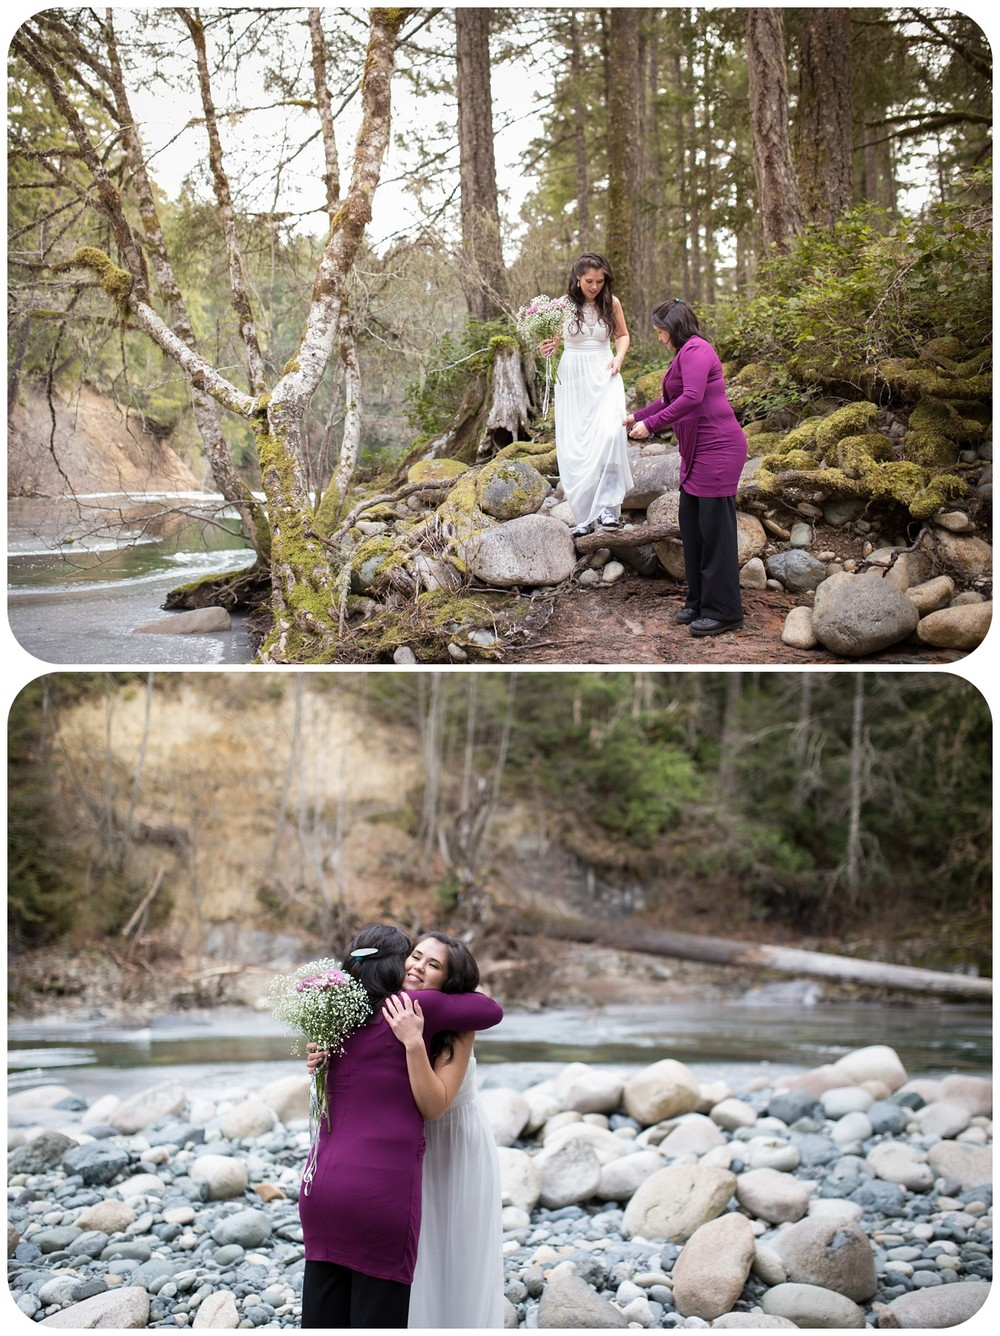 bride hugs mom before marrying groom, whimsical wedding entrance, whimsical parksville photographer